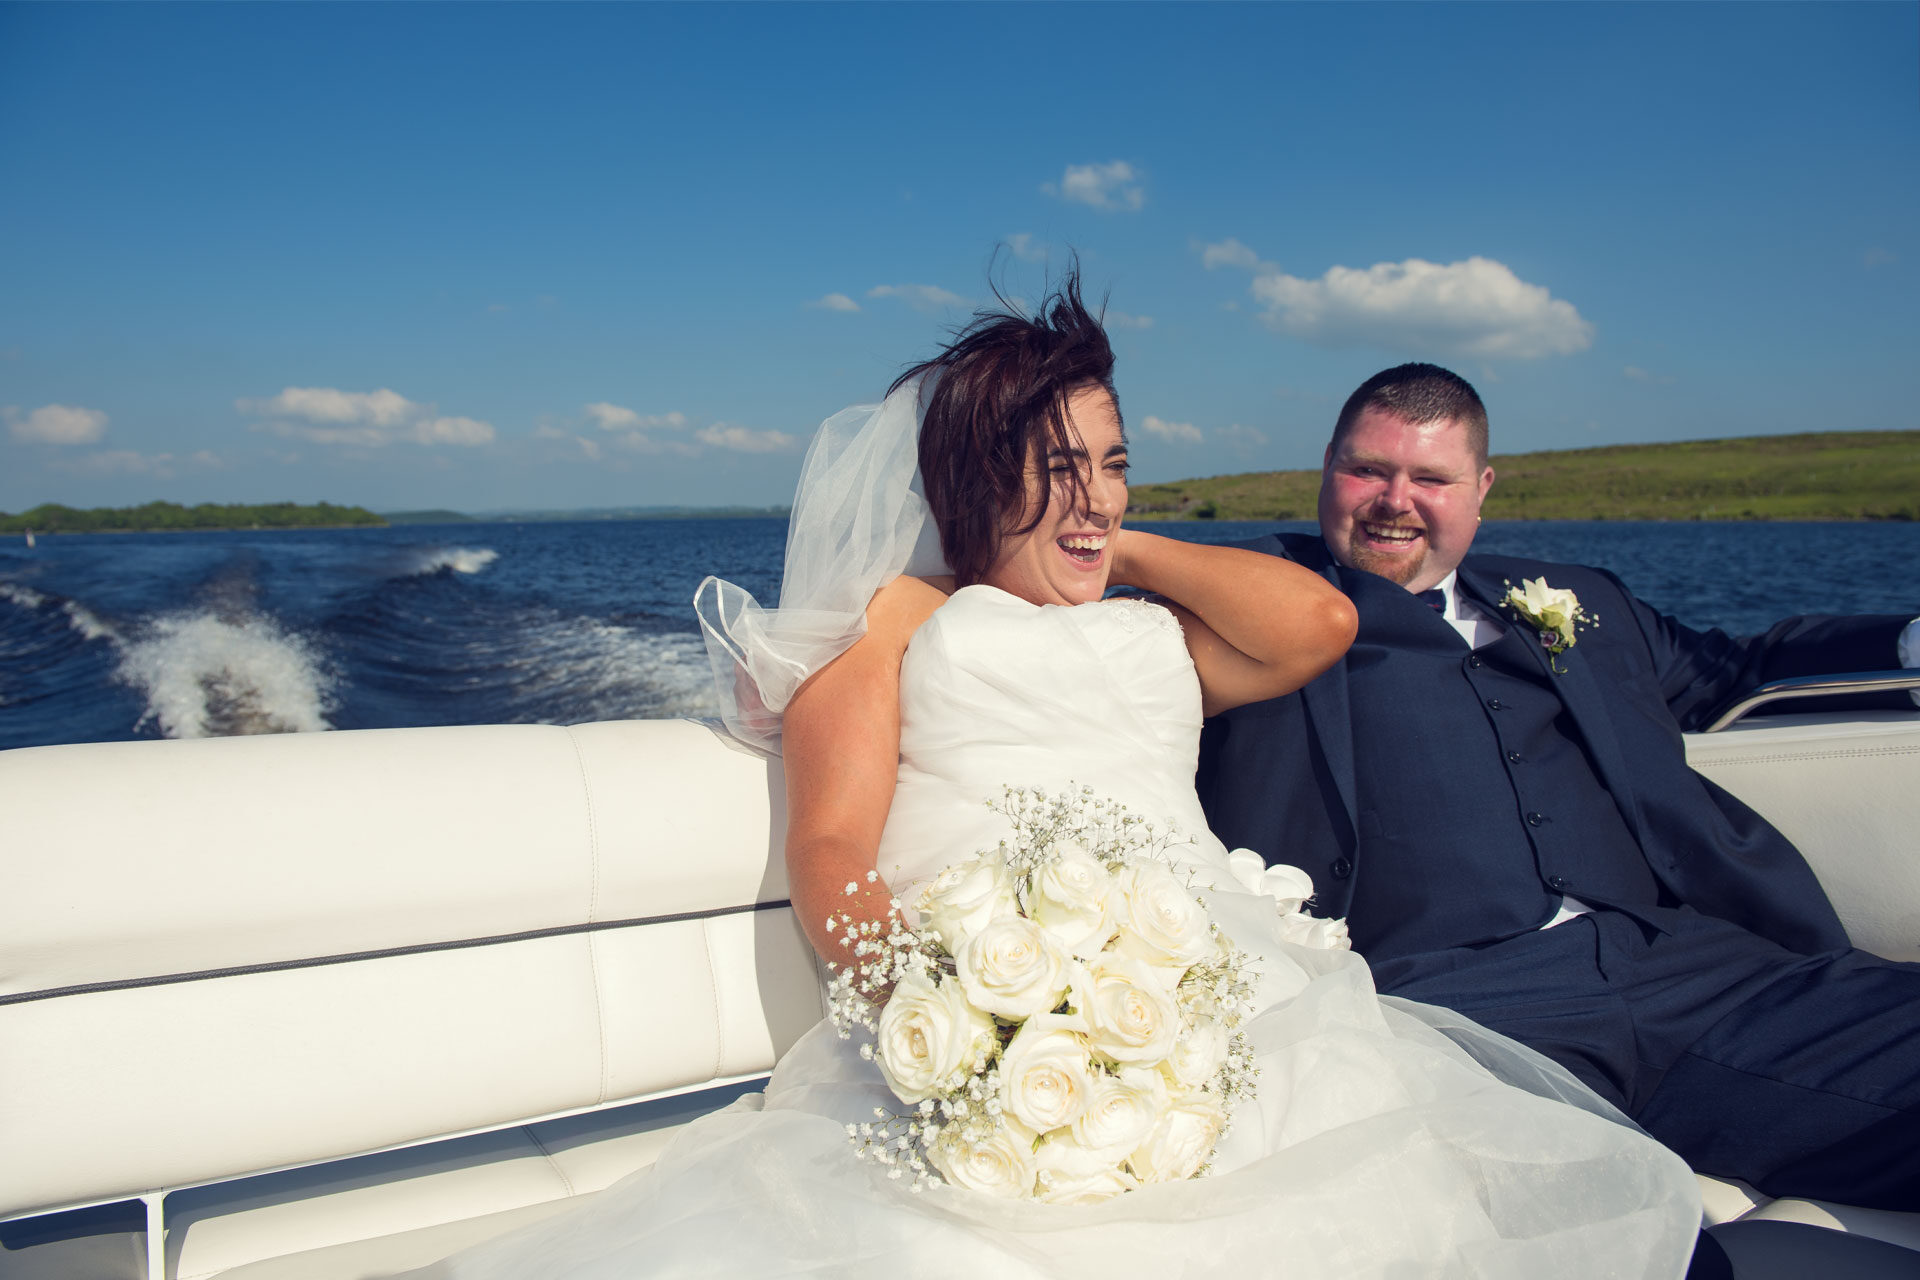 Photo of Leanne and Kevin on their wedding day, on board the Lusty Beg Hotel speed boat at Lusty Beg island, Co. Fermanagh, Northern Ireland.